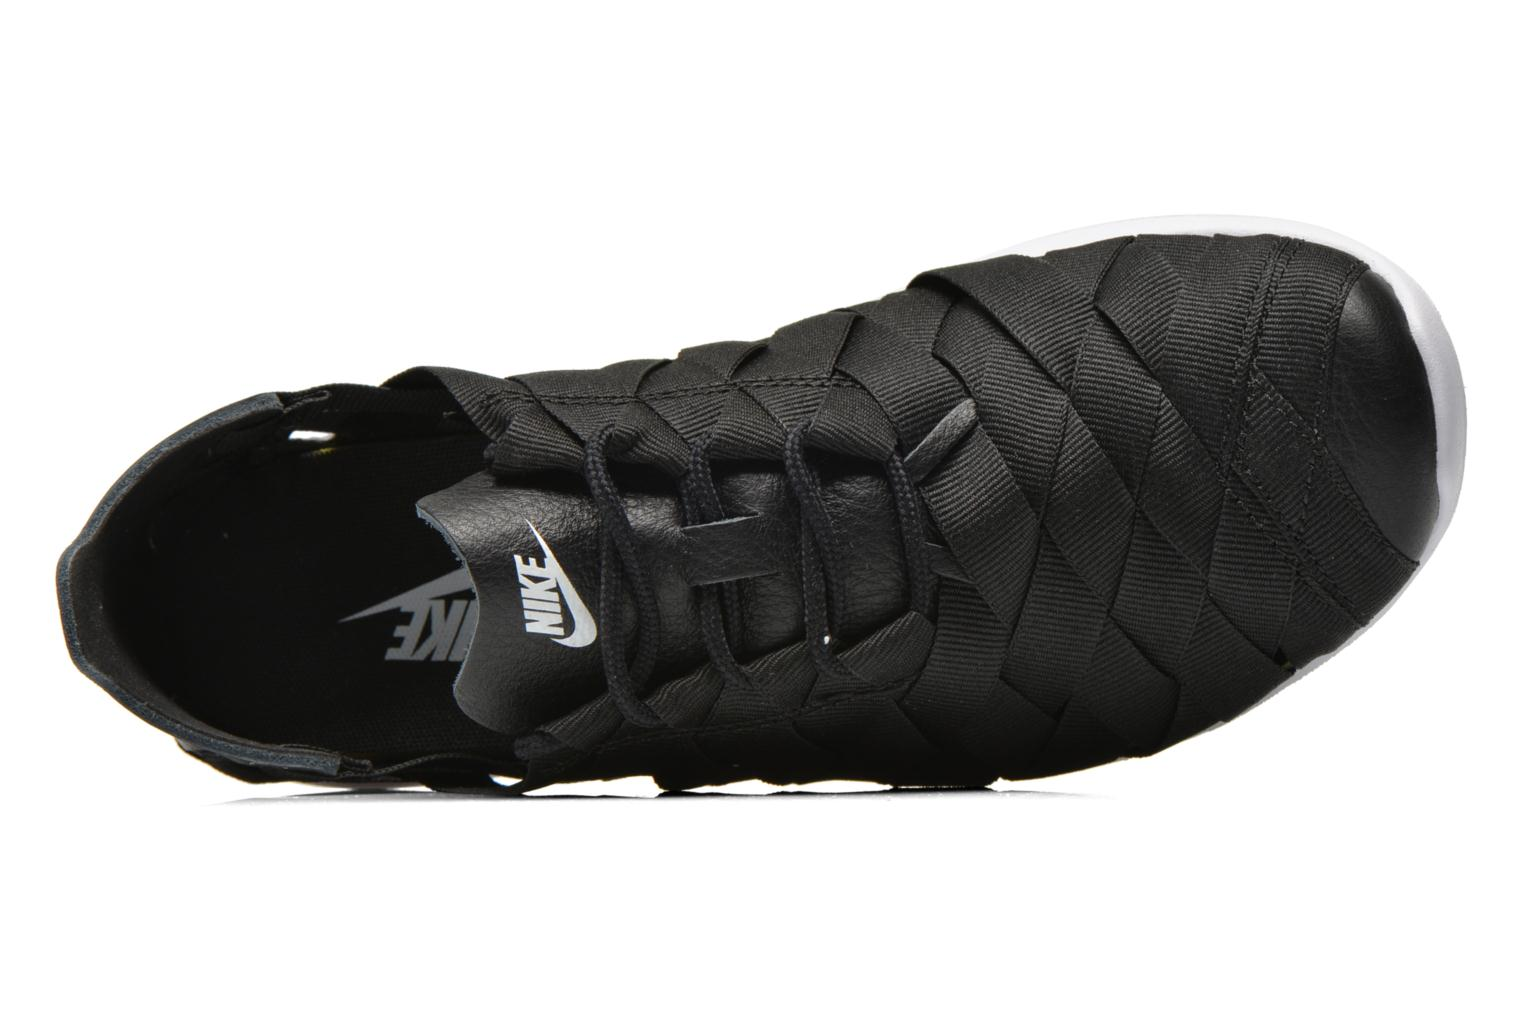 W Nike Juvenate Woven Black/black-White